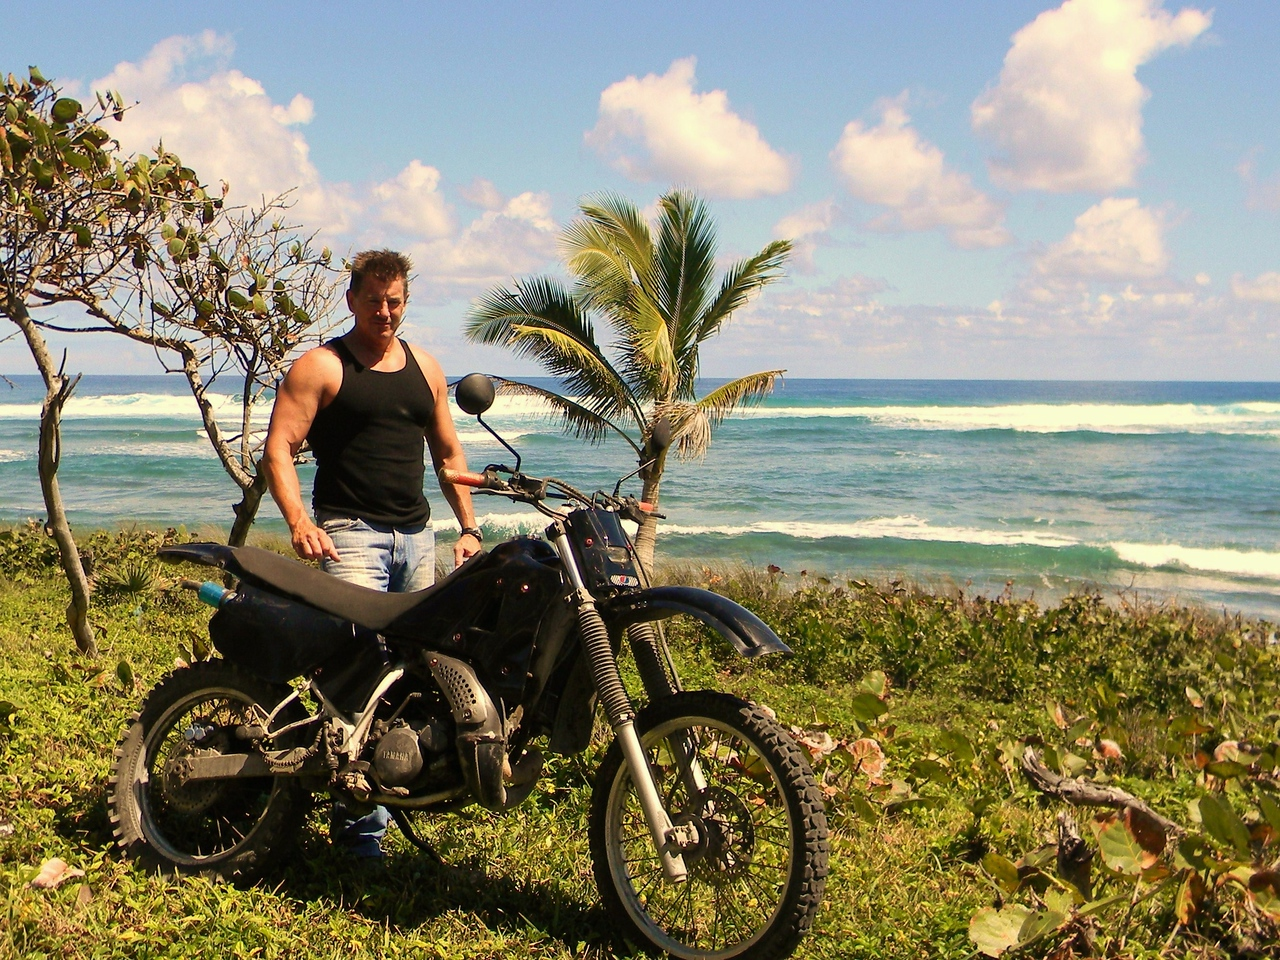 Cavebiker with his 1984 Yamaha DT125 Water-cooled Enduro